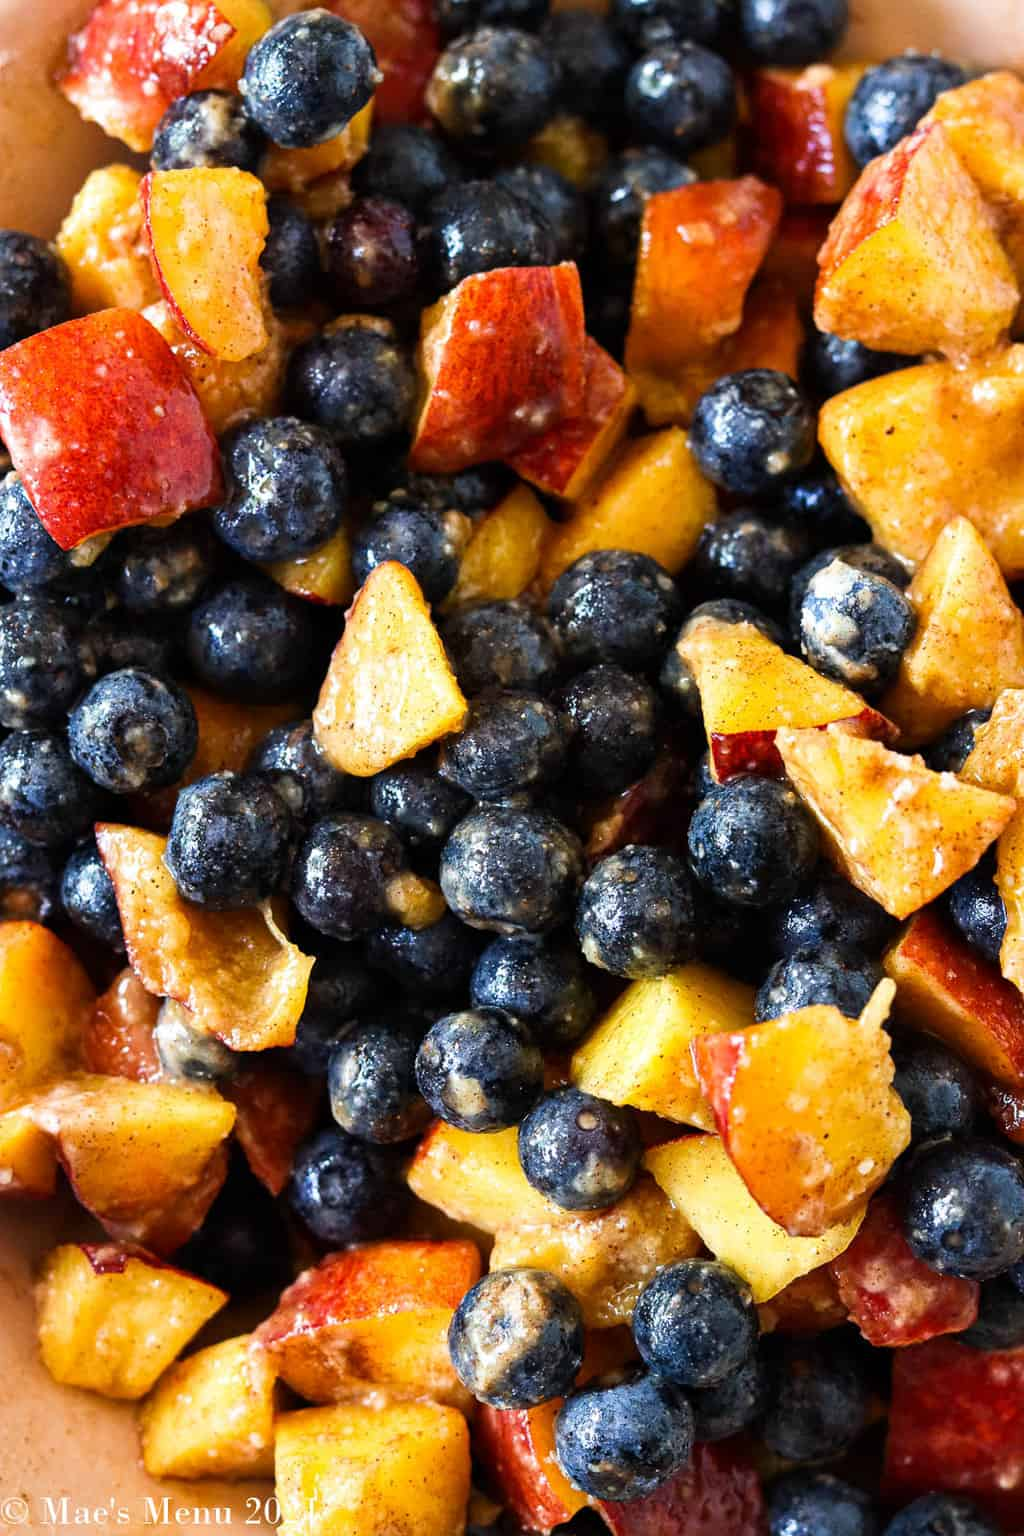 An overhead shot of blueberries and peaches mixed together with spices and sugar